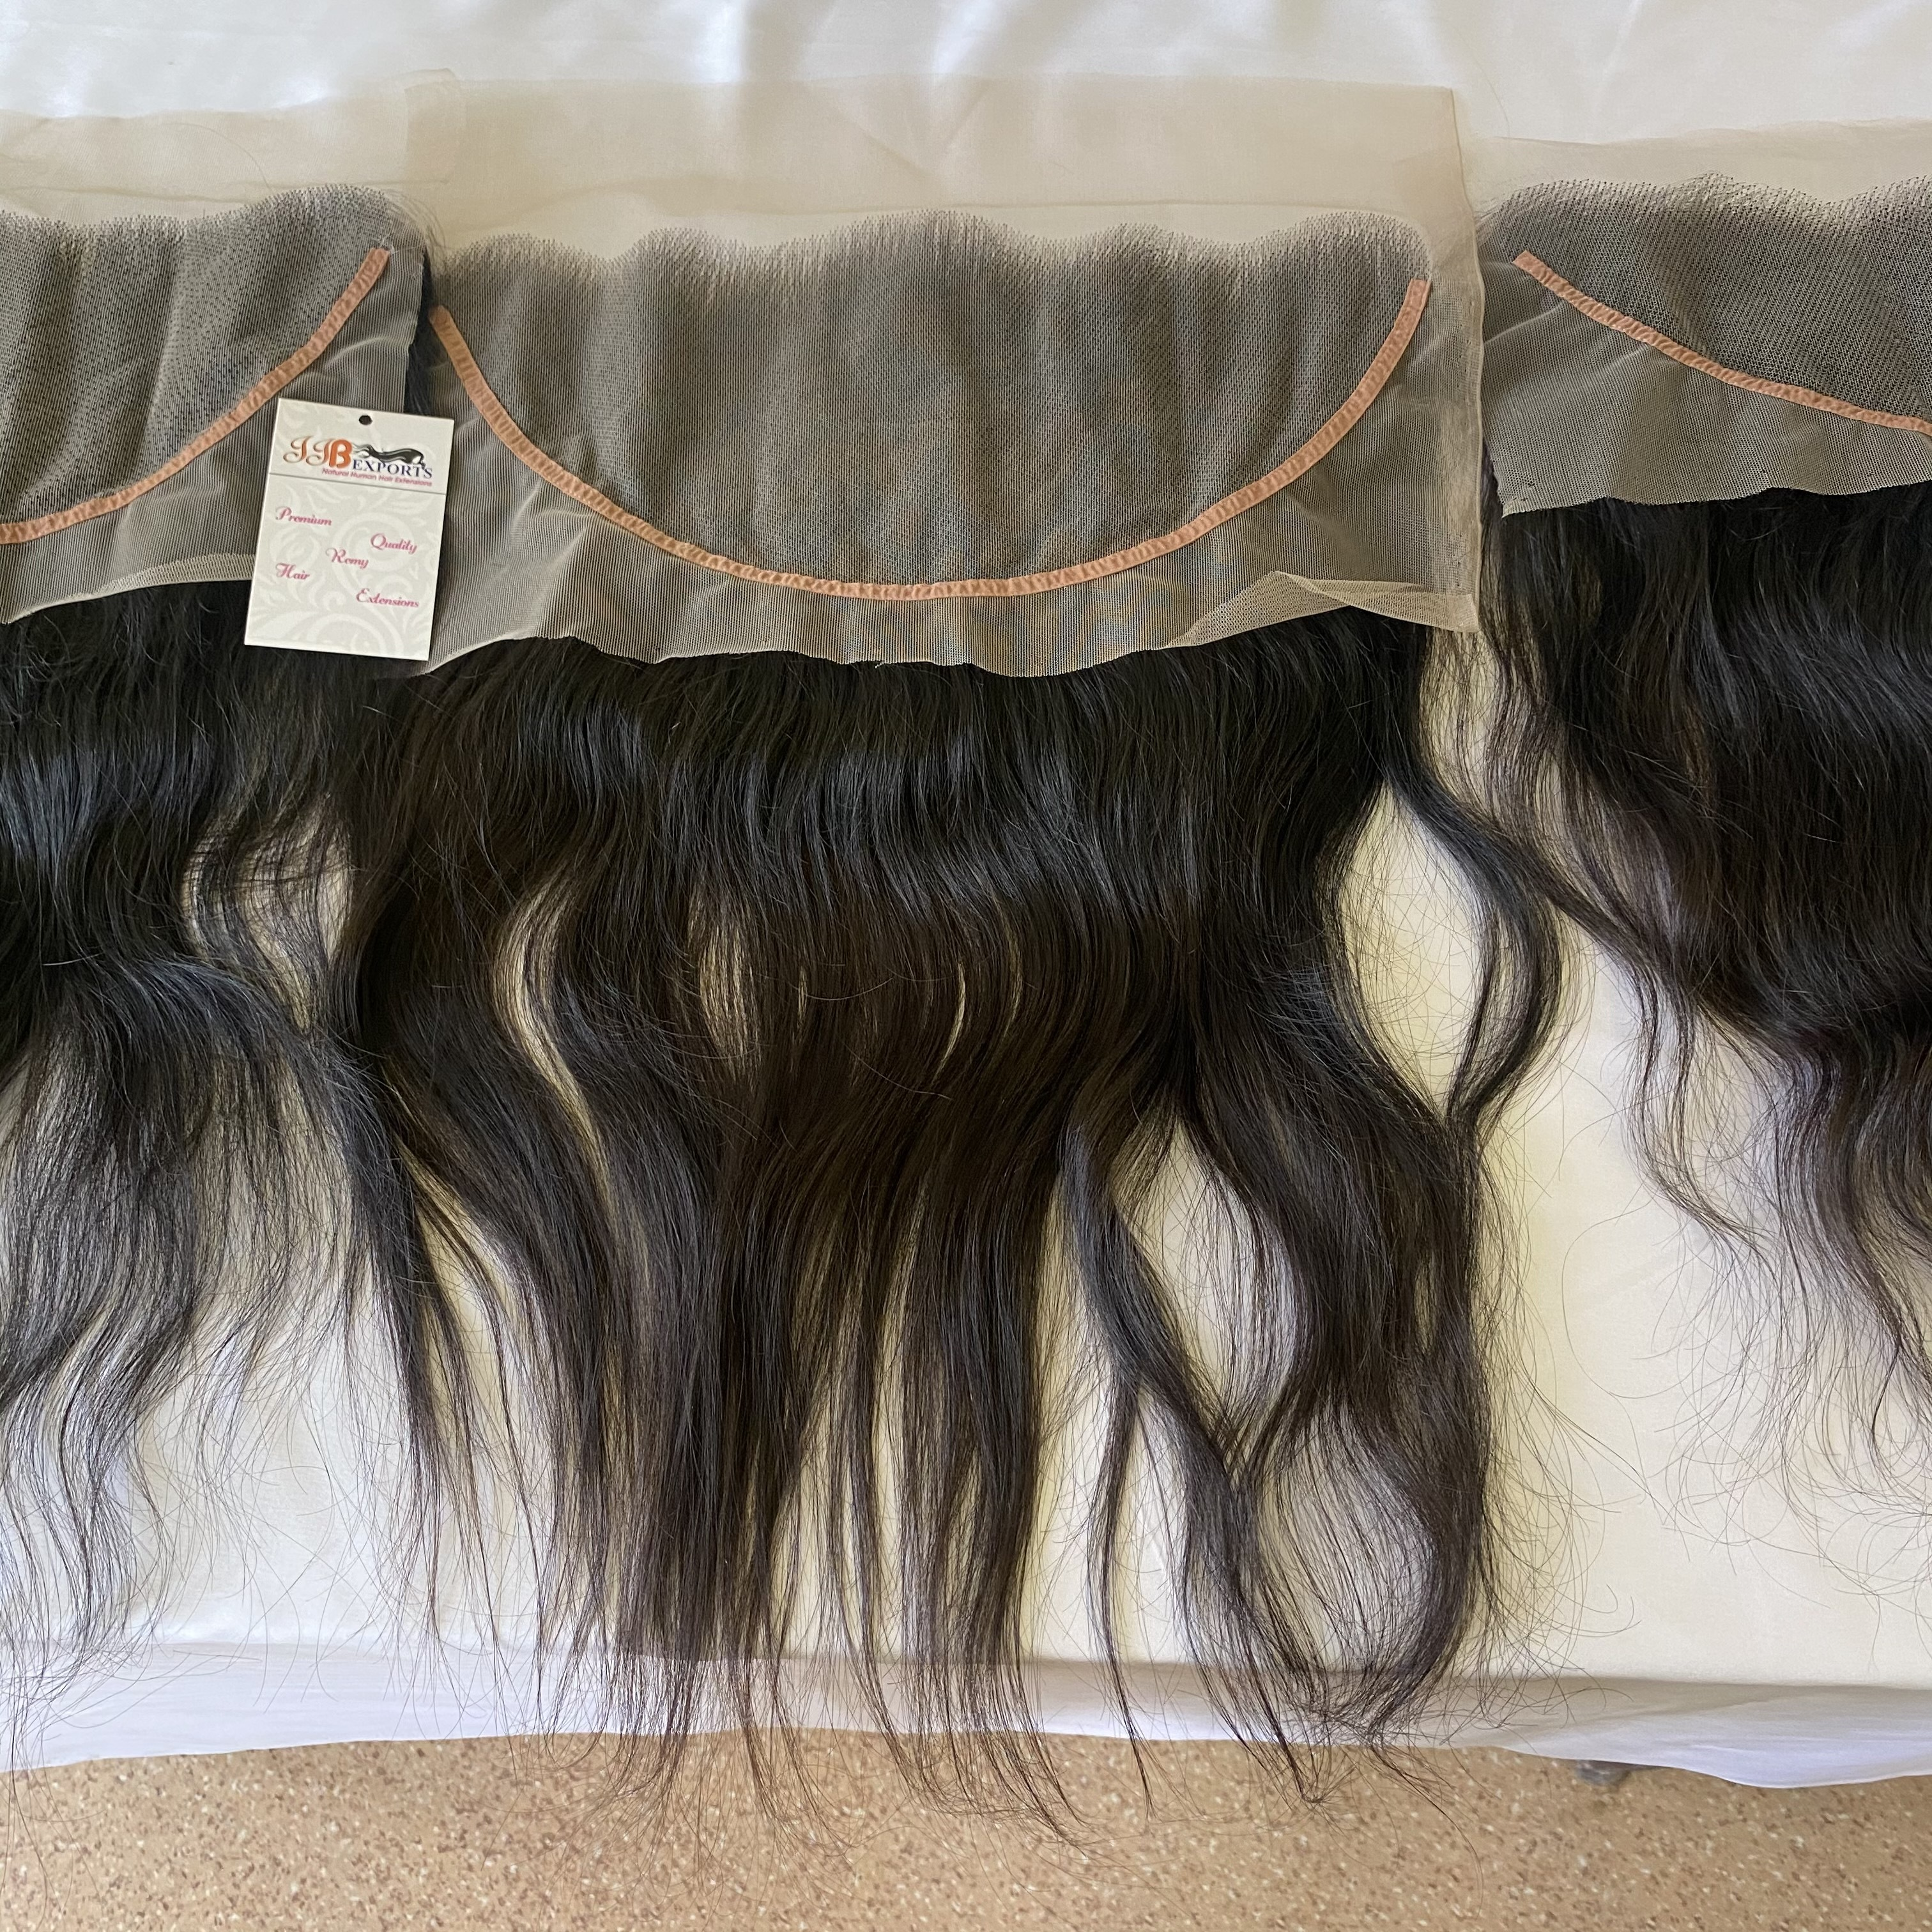 Best Selling Product Hd Lace Frontal 13x4 13x6 Top Quality Human Virgin Hair With Bundles